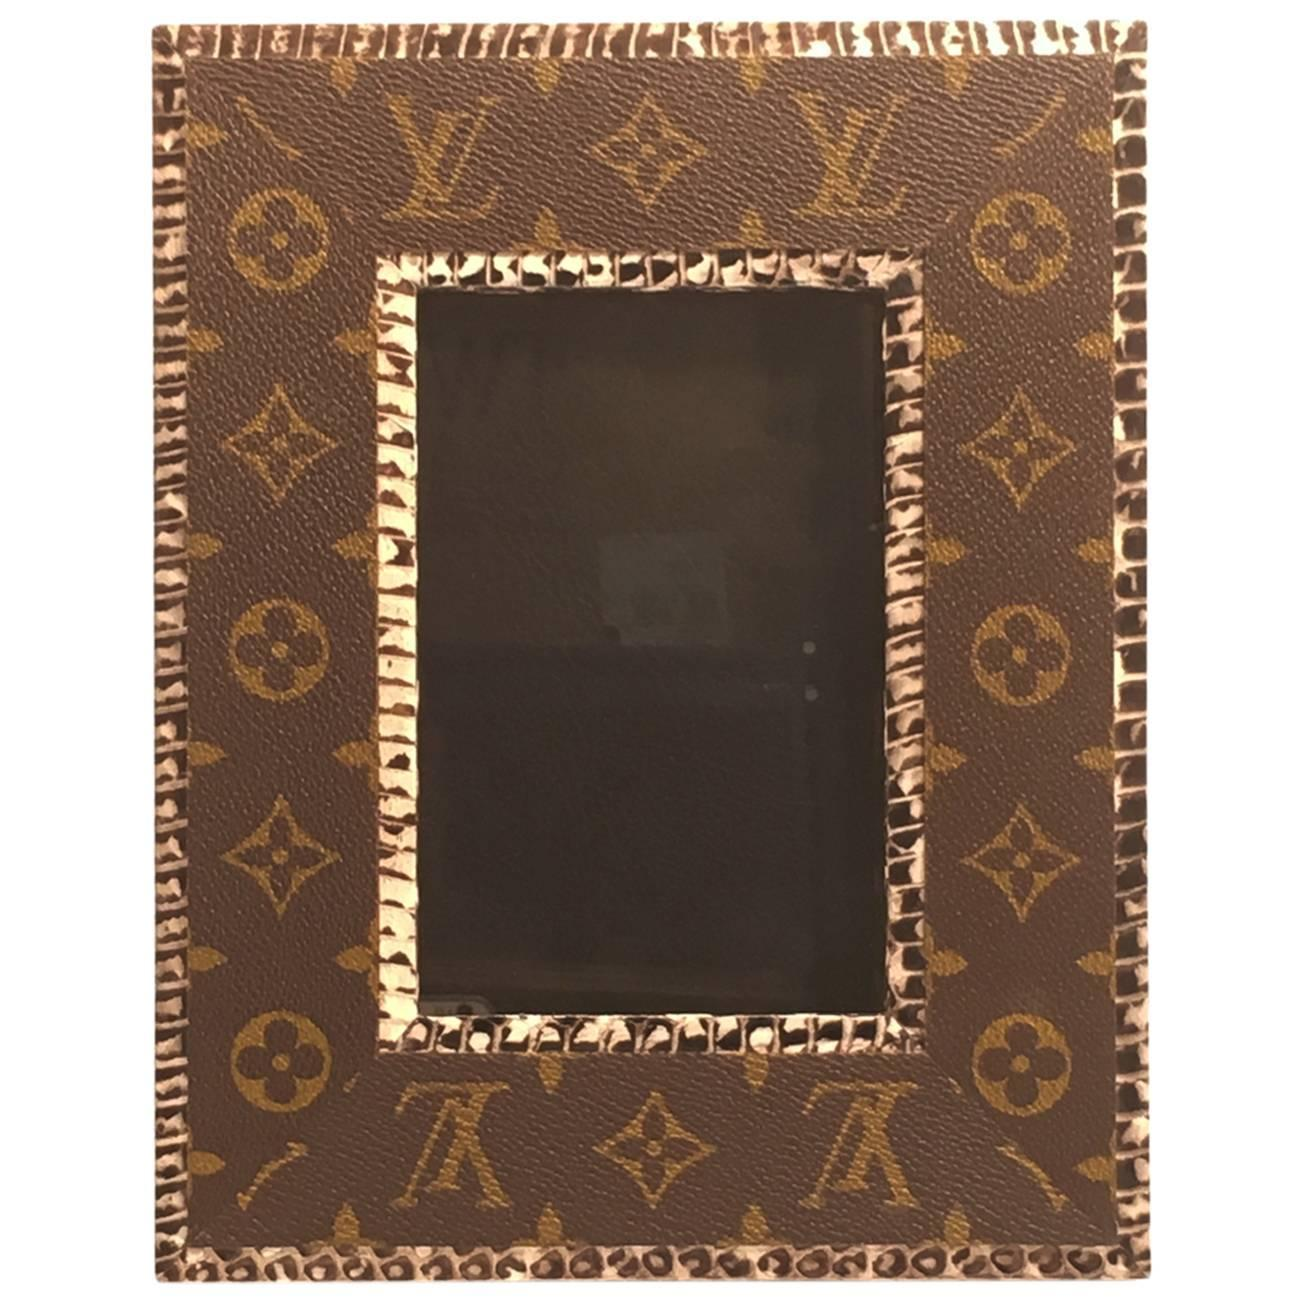 Picture frame made from recycled louis vuitton bags for sale at picture frame made from recycled louis vuitton bags for sale at 1stdibs jeuxipadfo Image collections